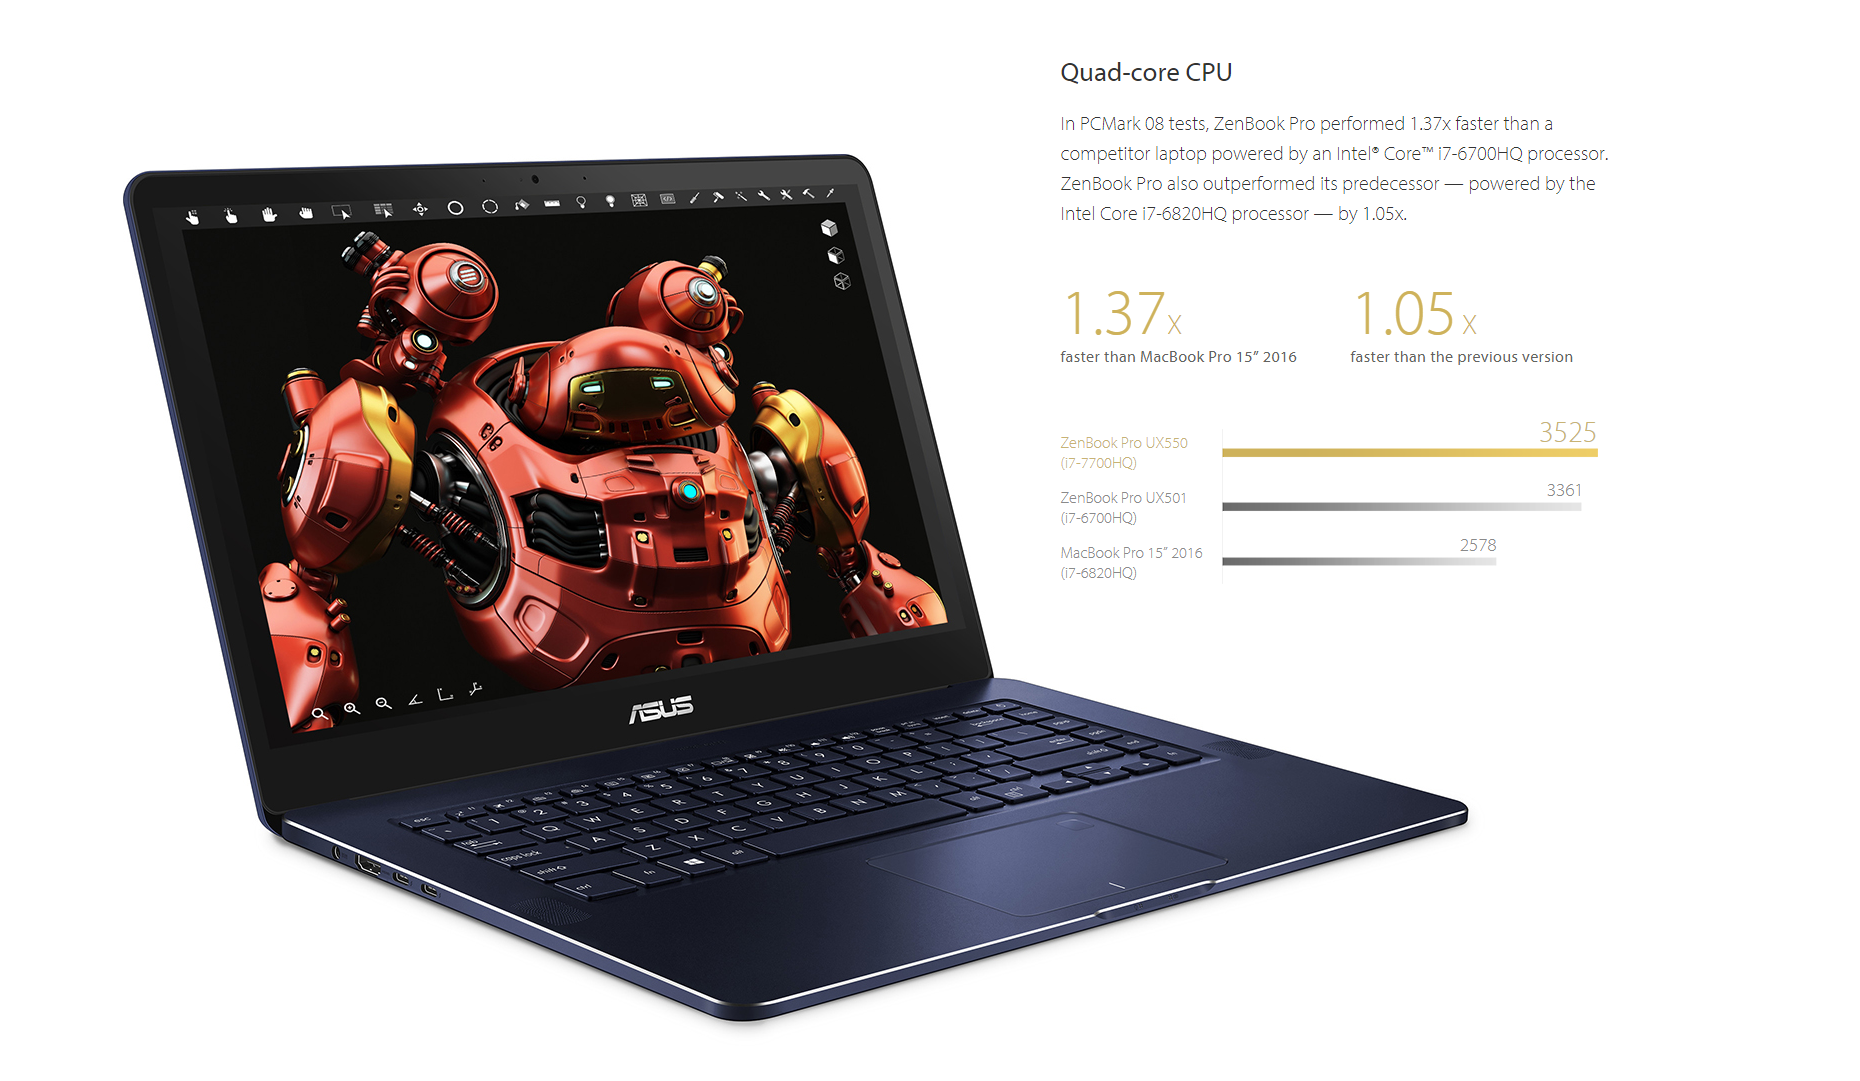 Asus Zenbook Pro Ux550ve Db71t 156 Full Hd Touchscreen Laptop W Frame Keybord X 455 Casing Also Outperformed Its Predecessor Powered By The Intel Core I7 6820hq Processor 105x